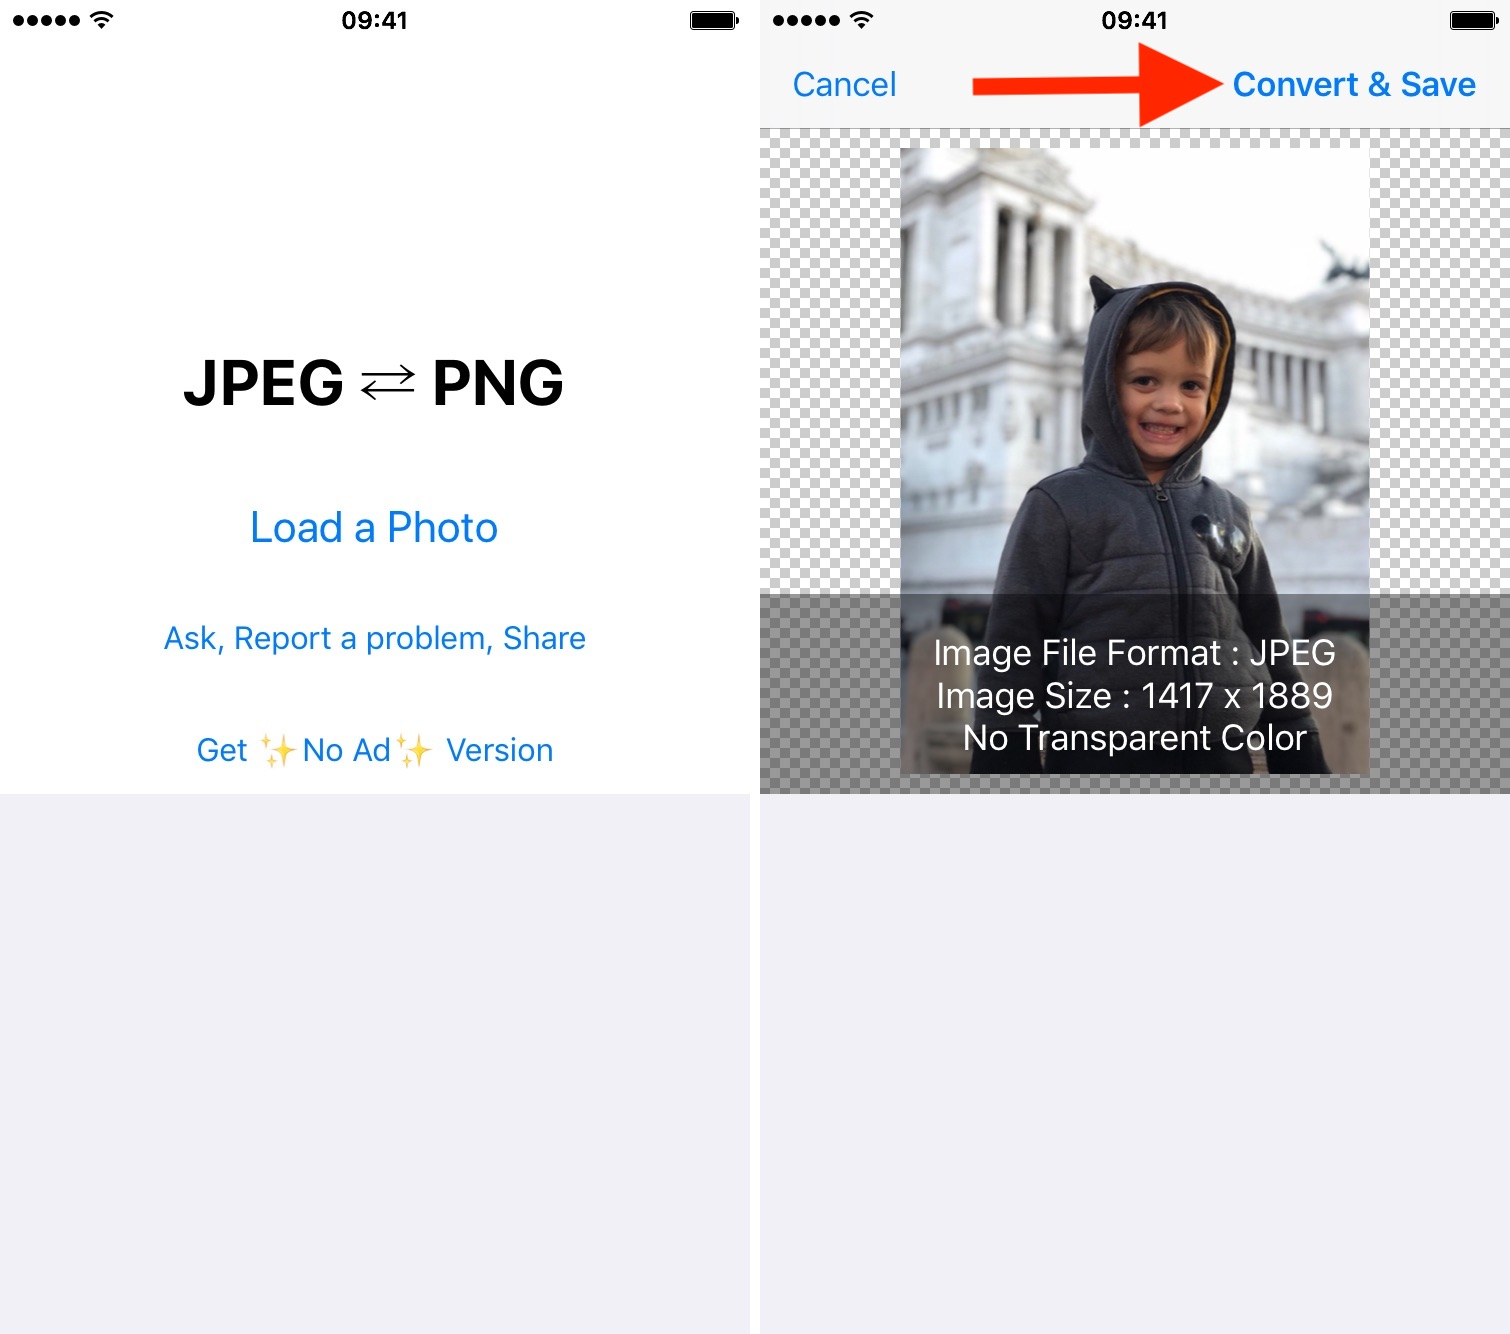 How to convert various image file types to JPG or PNG on iPhone or iPad.